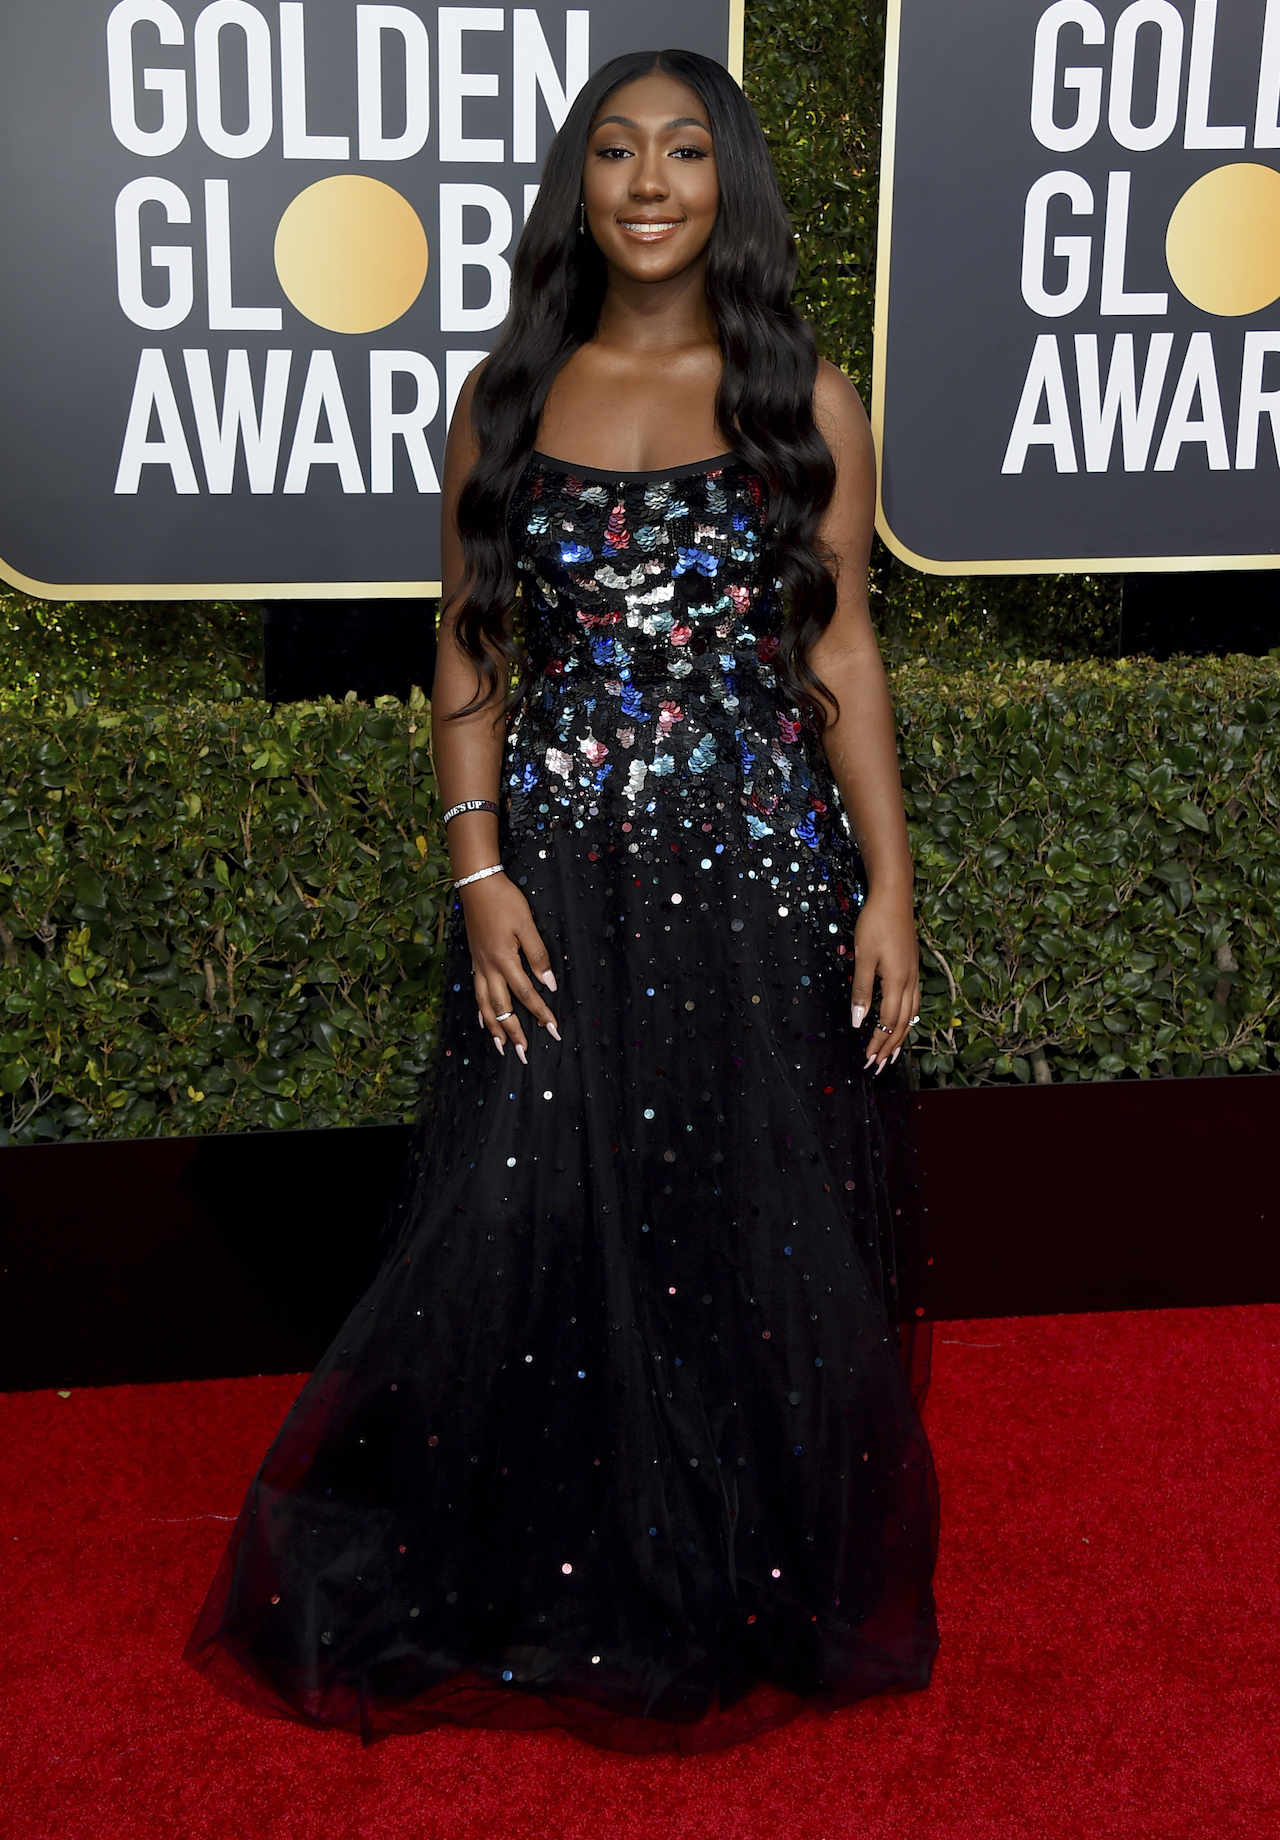 "<div class=""meta image-caption""><div class=""origin-logo origin-image ap""><span>AP</span></div><span class=""caption-text"">Isan Elba arrives at the 76th annual Golden Globe Awards at the Beverly Hilton Hotel on Sunday, Jan. 6, 2019, in Beverly Hills, Calif. (Jordan Strauss/Invision/AP)</span></div>"